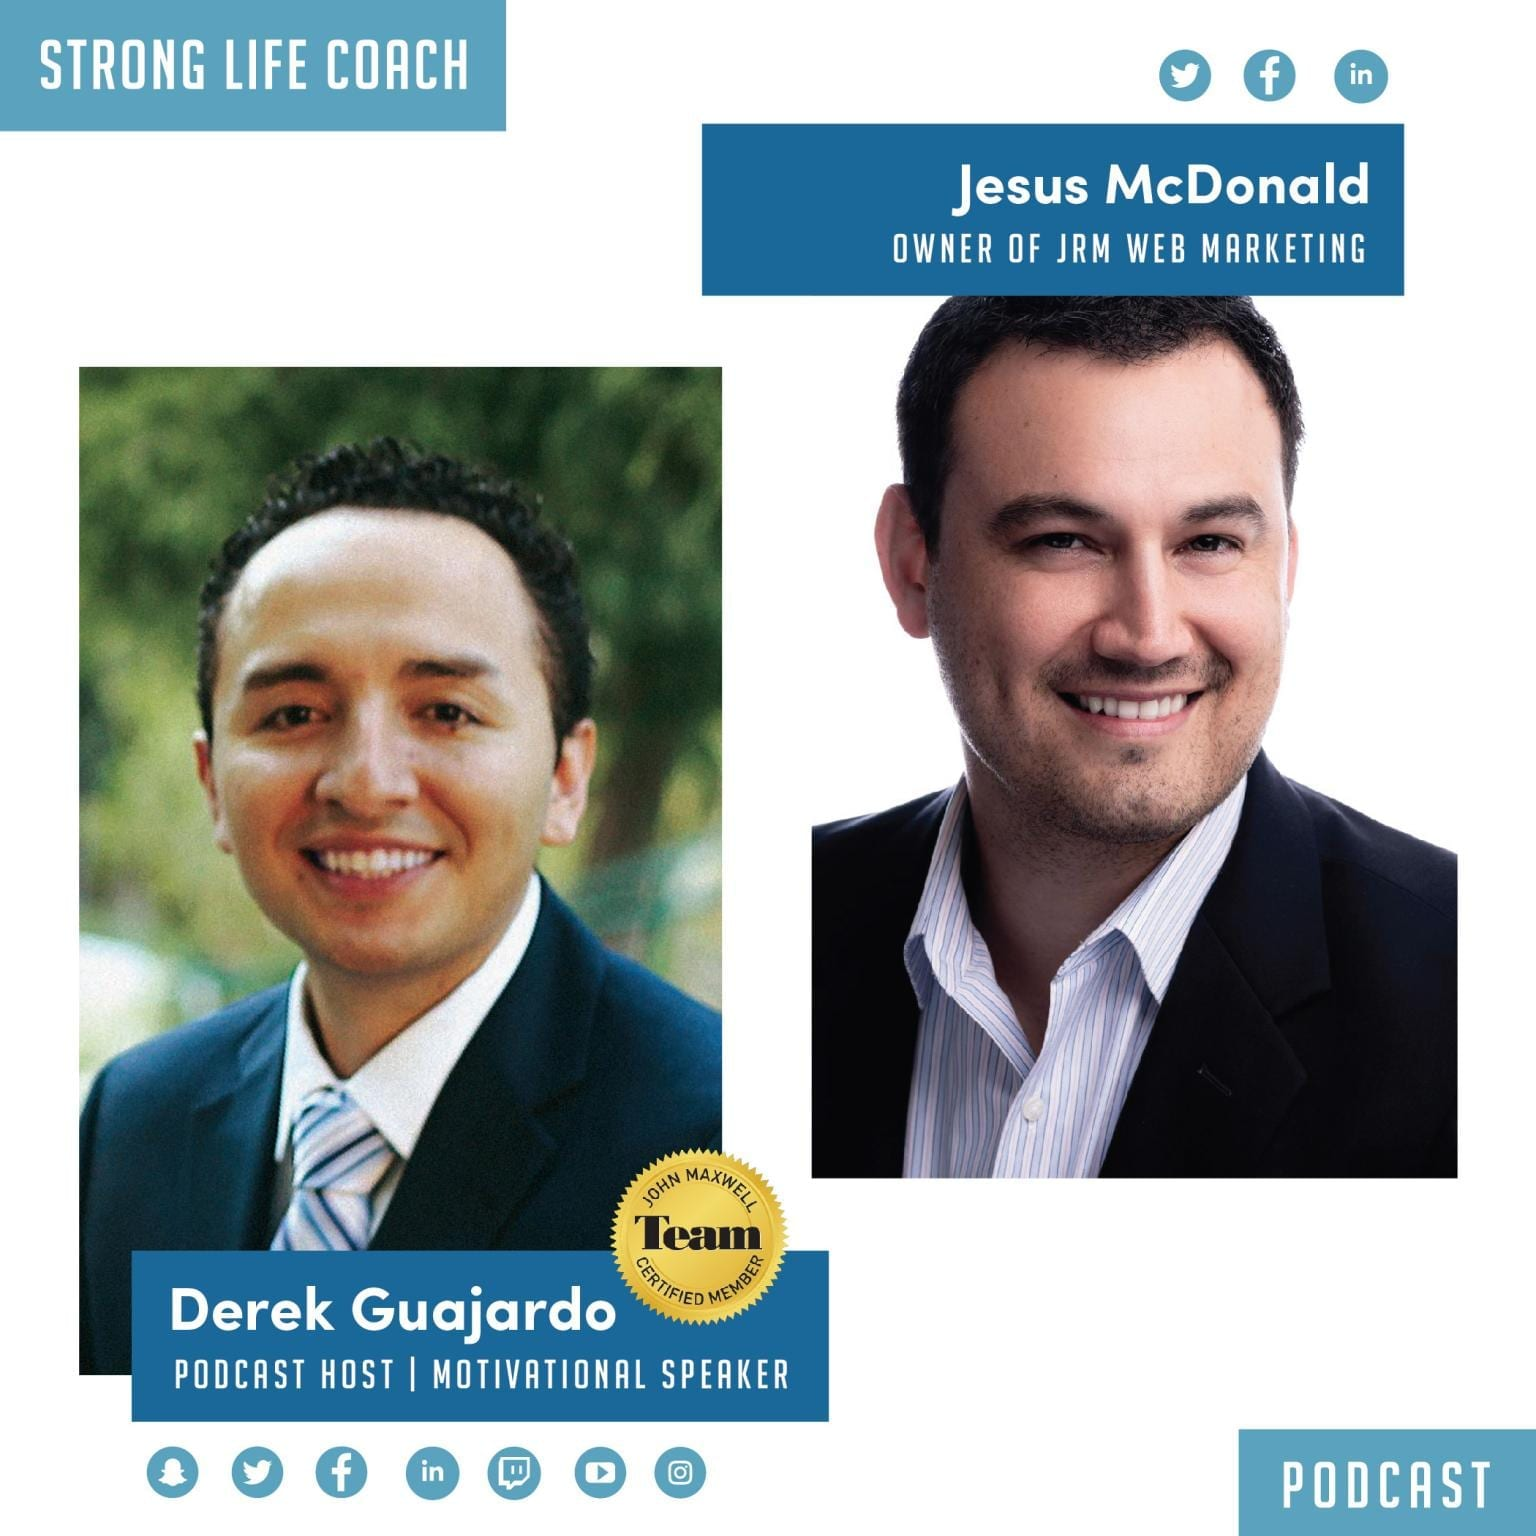 Photography of Podcast episode CEO Jesus McDonald talks about starting a business